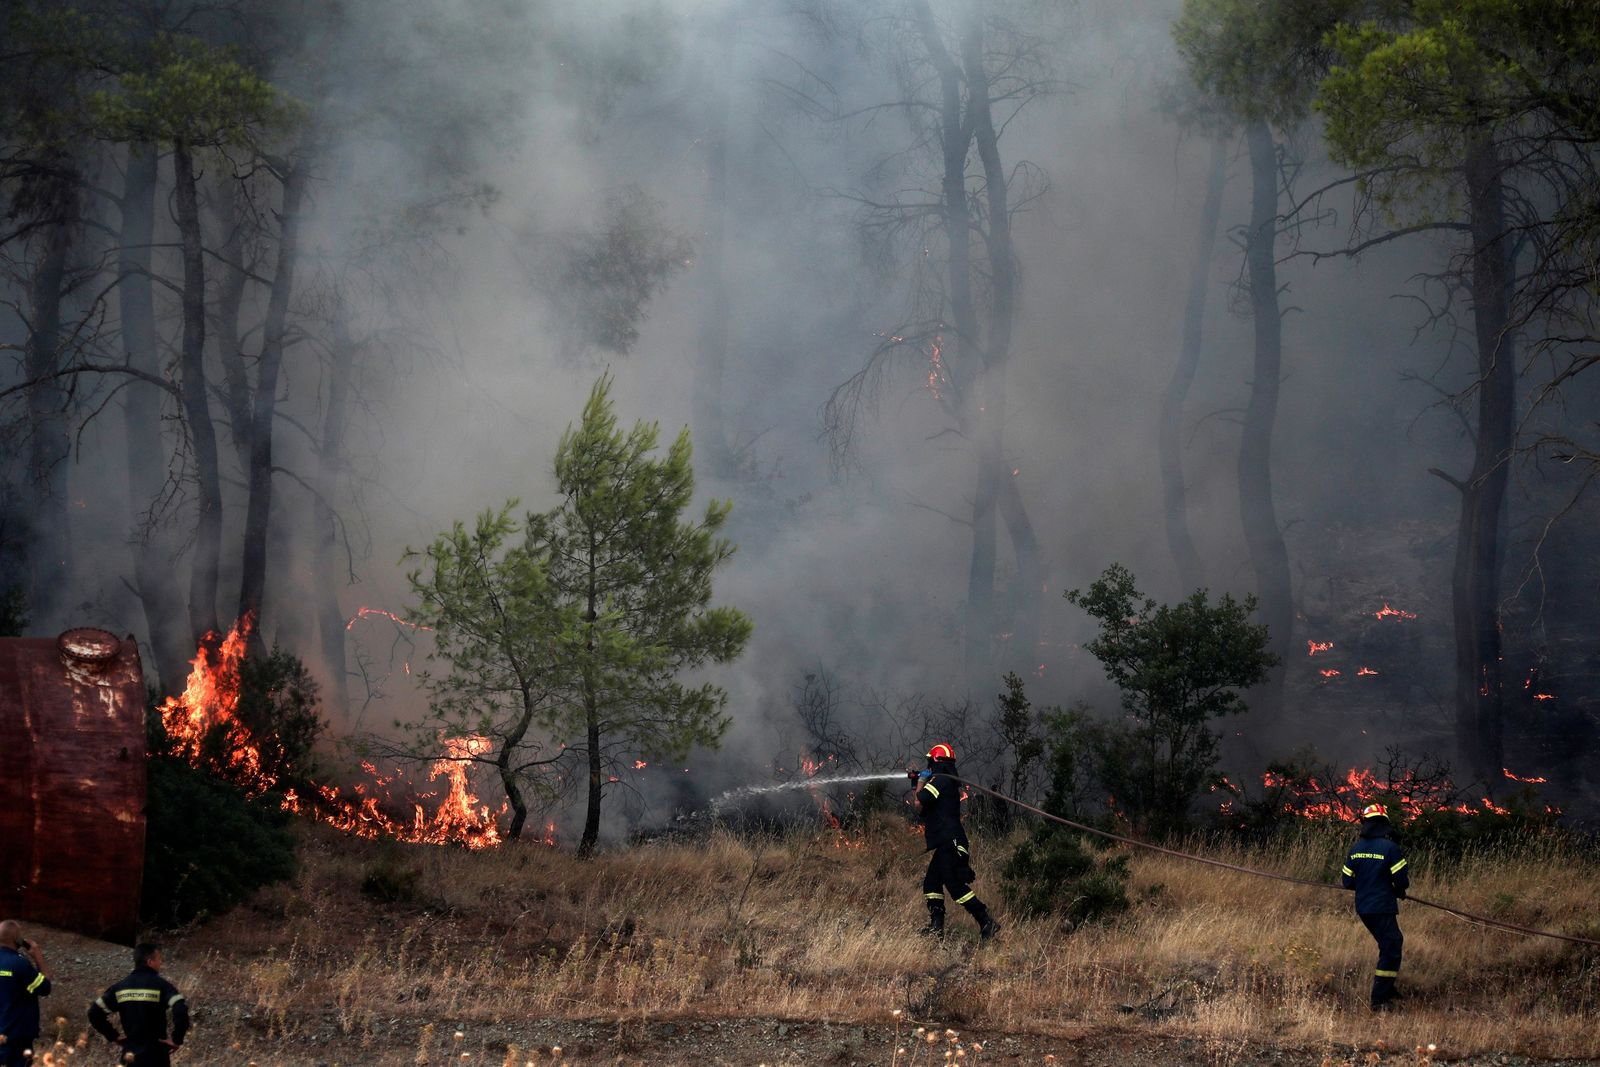 File- Firefighters try to extinguish a wildfire in Makrymalli village on the Greek island of Evia, Wednesday, Aug. 14, 2019. (AP Photo/Yorgos Karahalis)